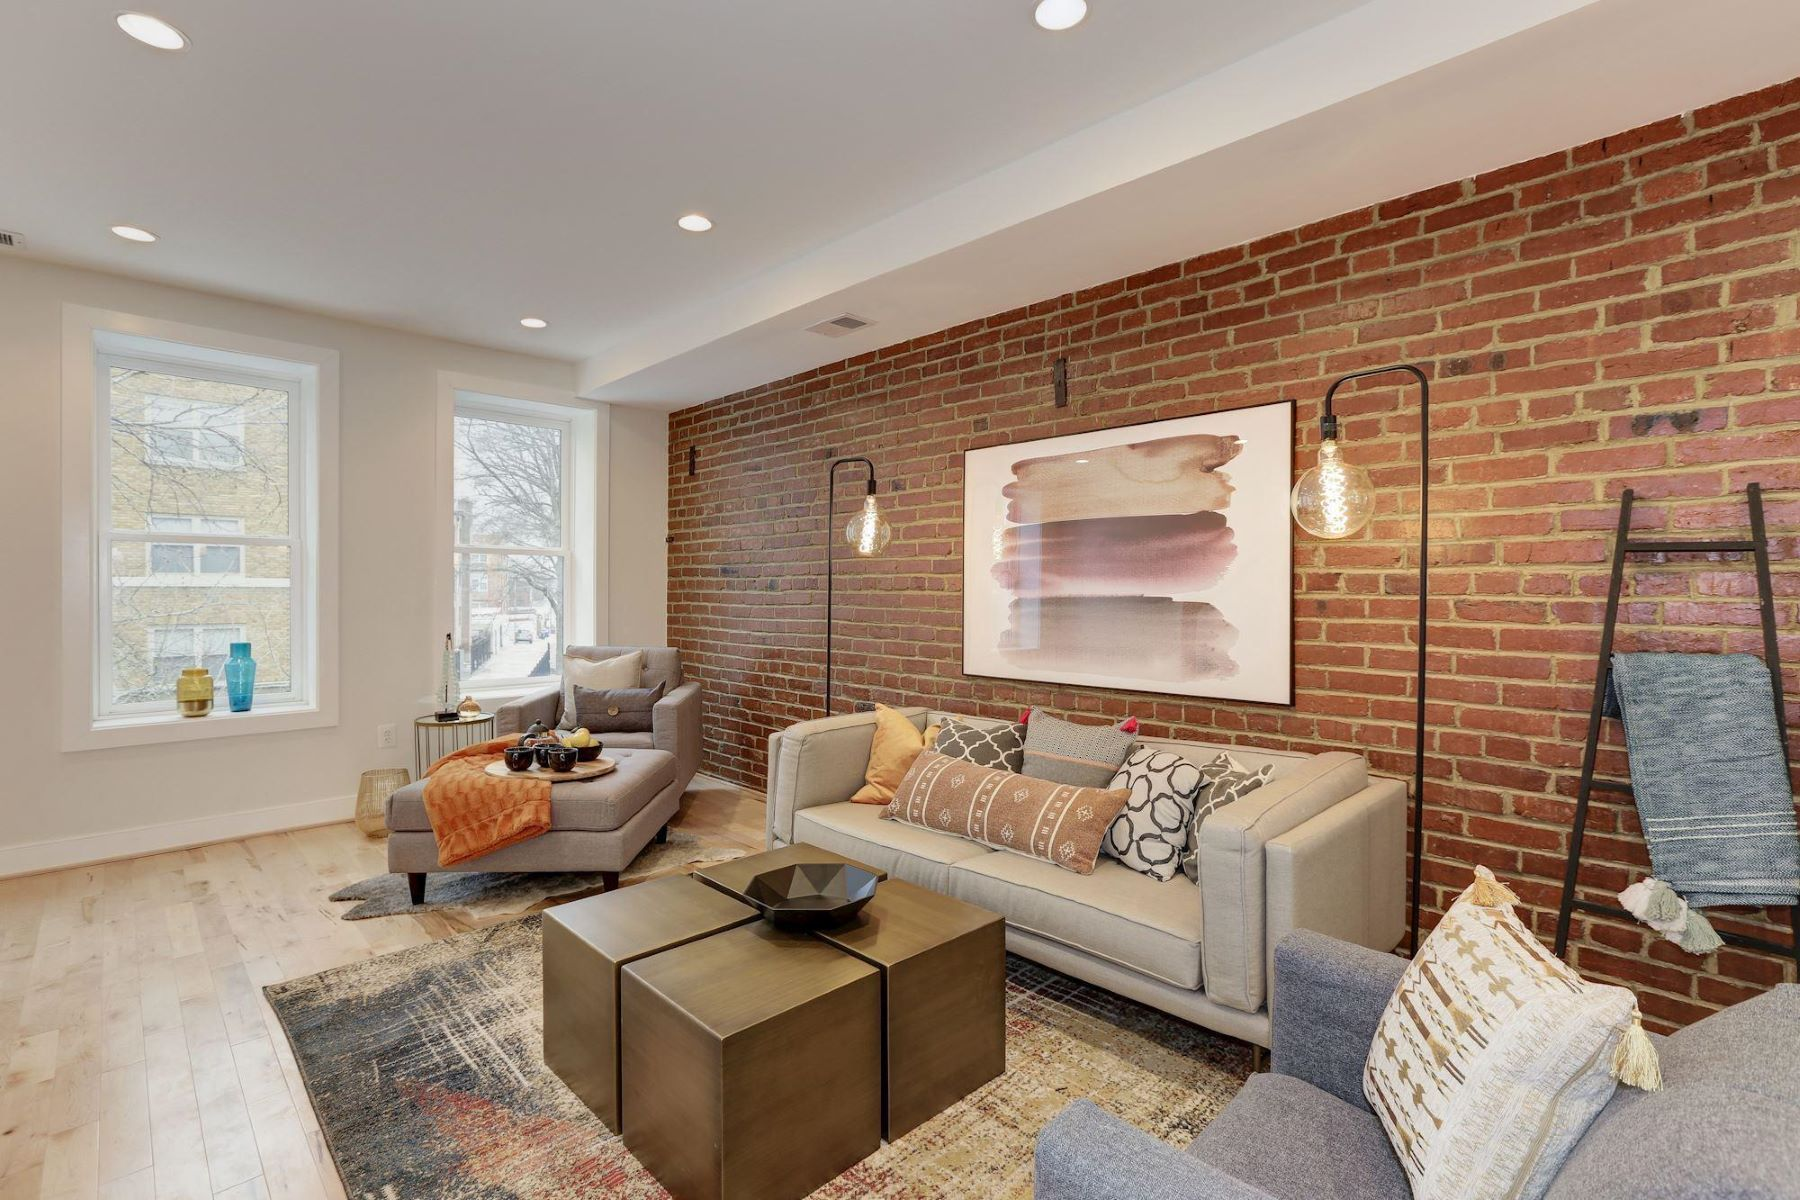 Other Residential for Sale at 1114 Monroe St NW #2 1114 Monroe St NW #2 Washington, District Of Columbia 20010 United States